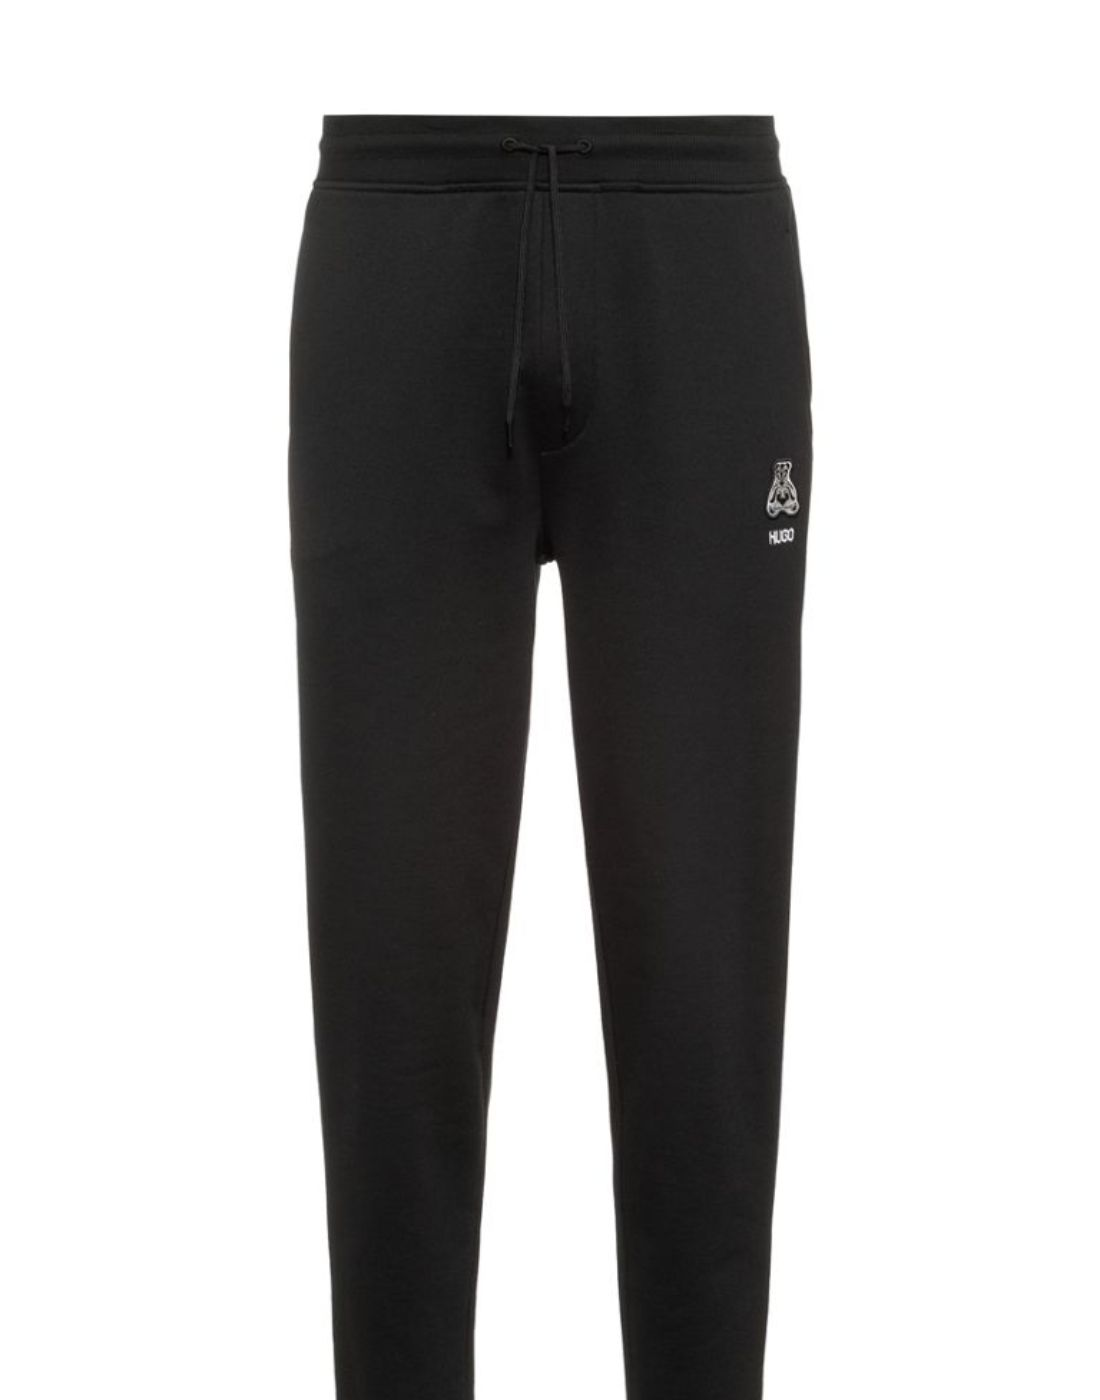 hugo boss 2021 mens sweat pants